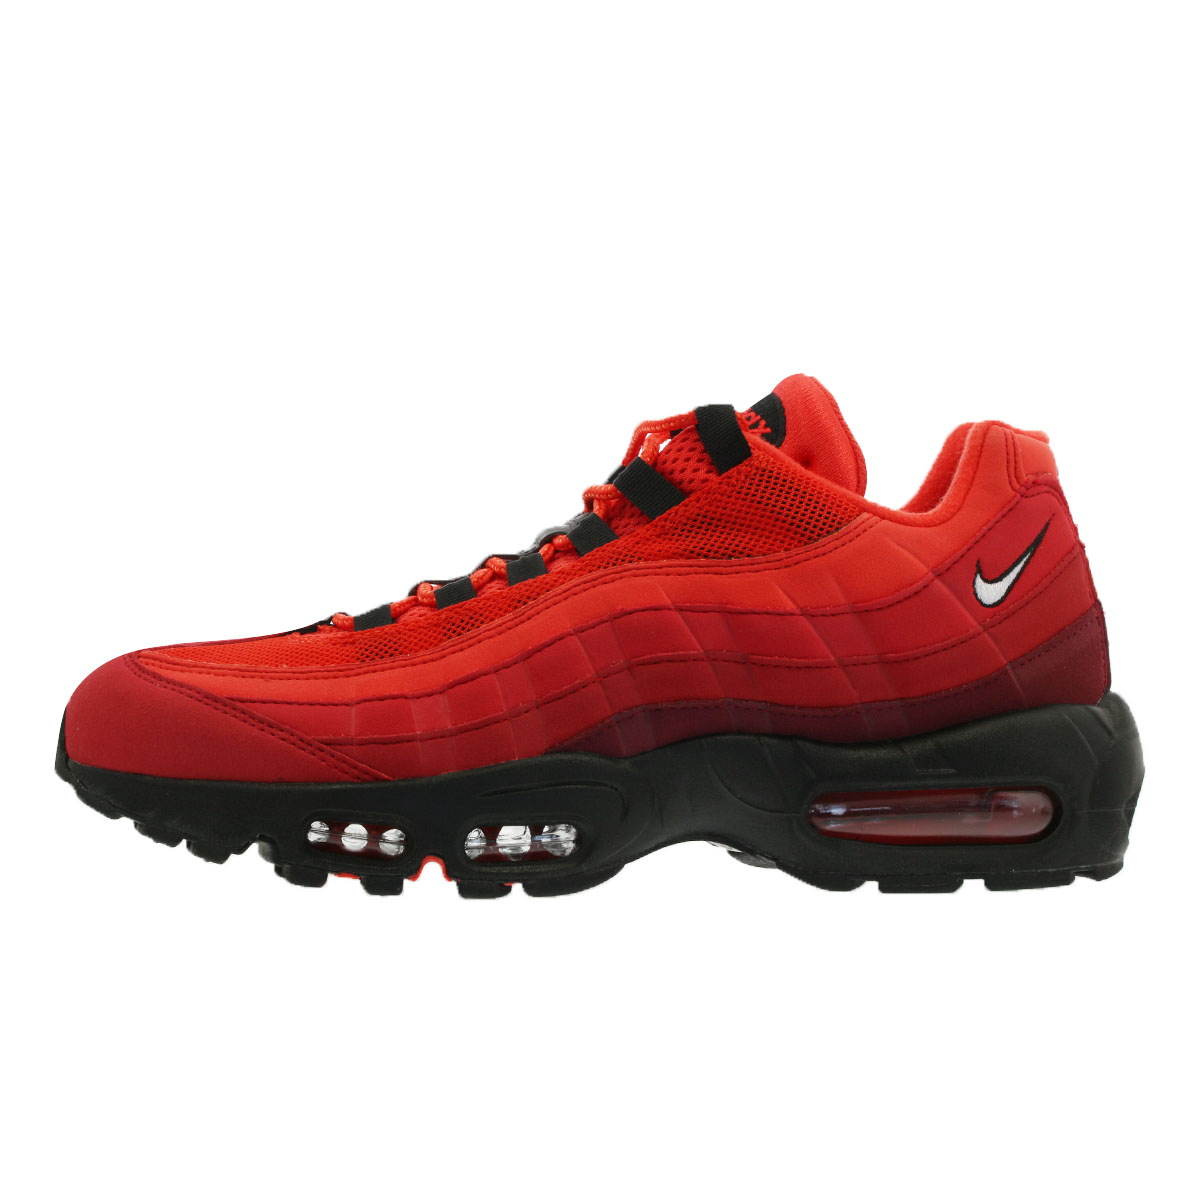 lowest price 4f7aa 82dab NIKE AIR MAX 95 OG Kie Ney AMAX 95 OG HABANERO RED/WHITE/UNIVERSITY RED/GYM  RED/TEAM RED/BLACK at2865-600